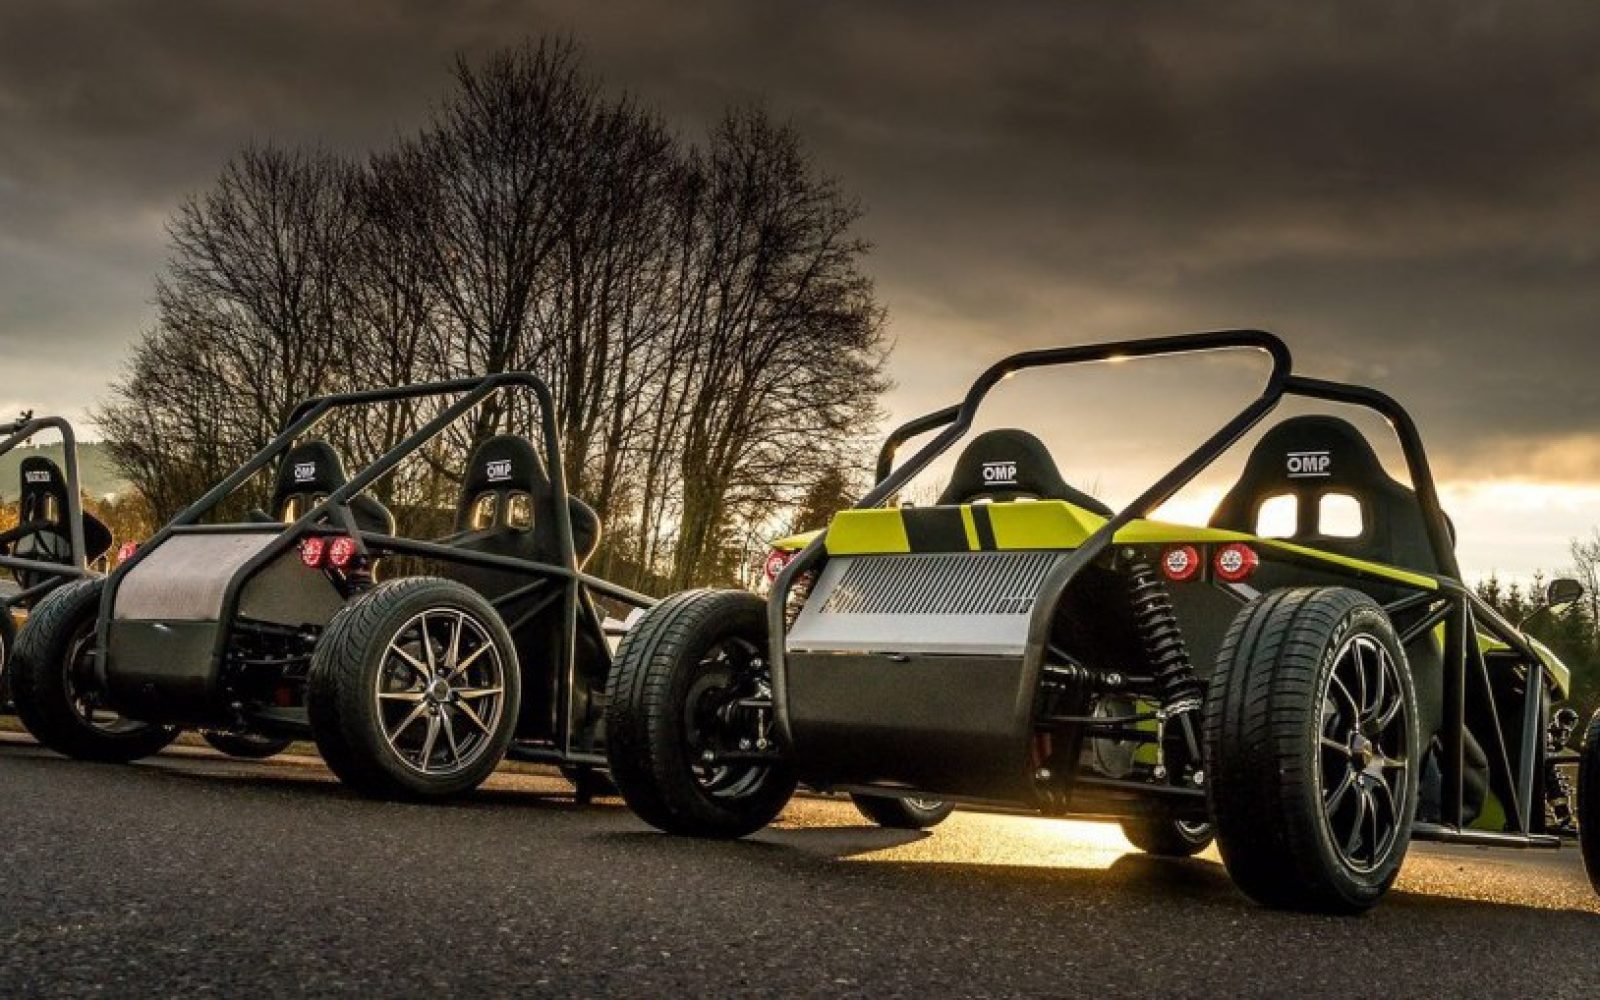 Best Car For Uber >> A fun electric kit car: 18 kWh battery and 80 miles of range for ~$28,000 [Gallery & Videos ...